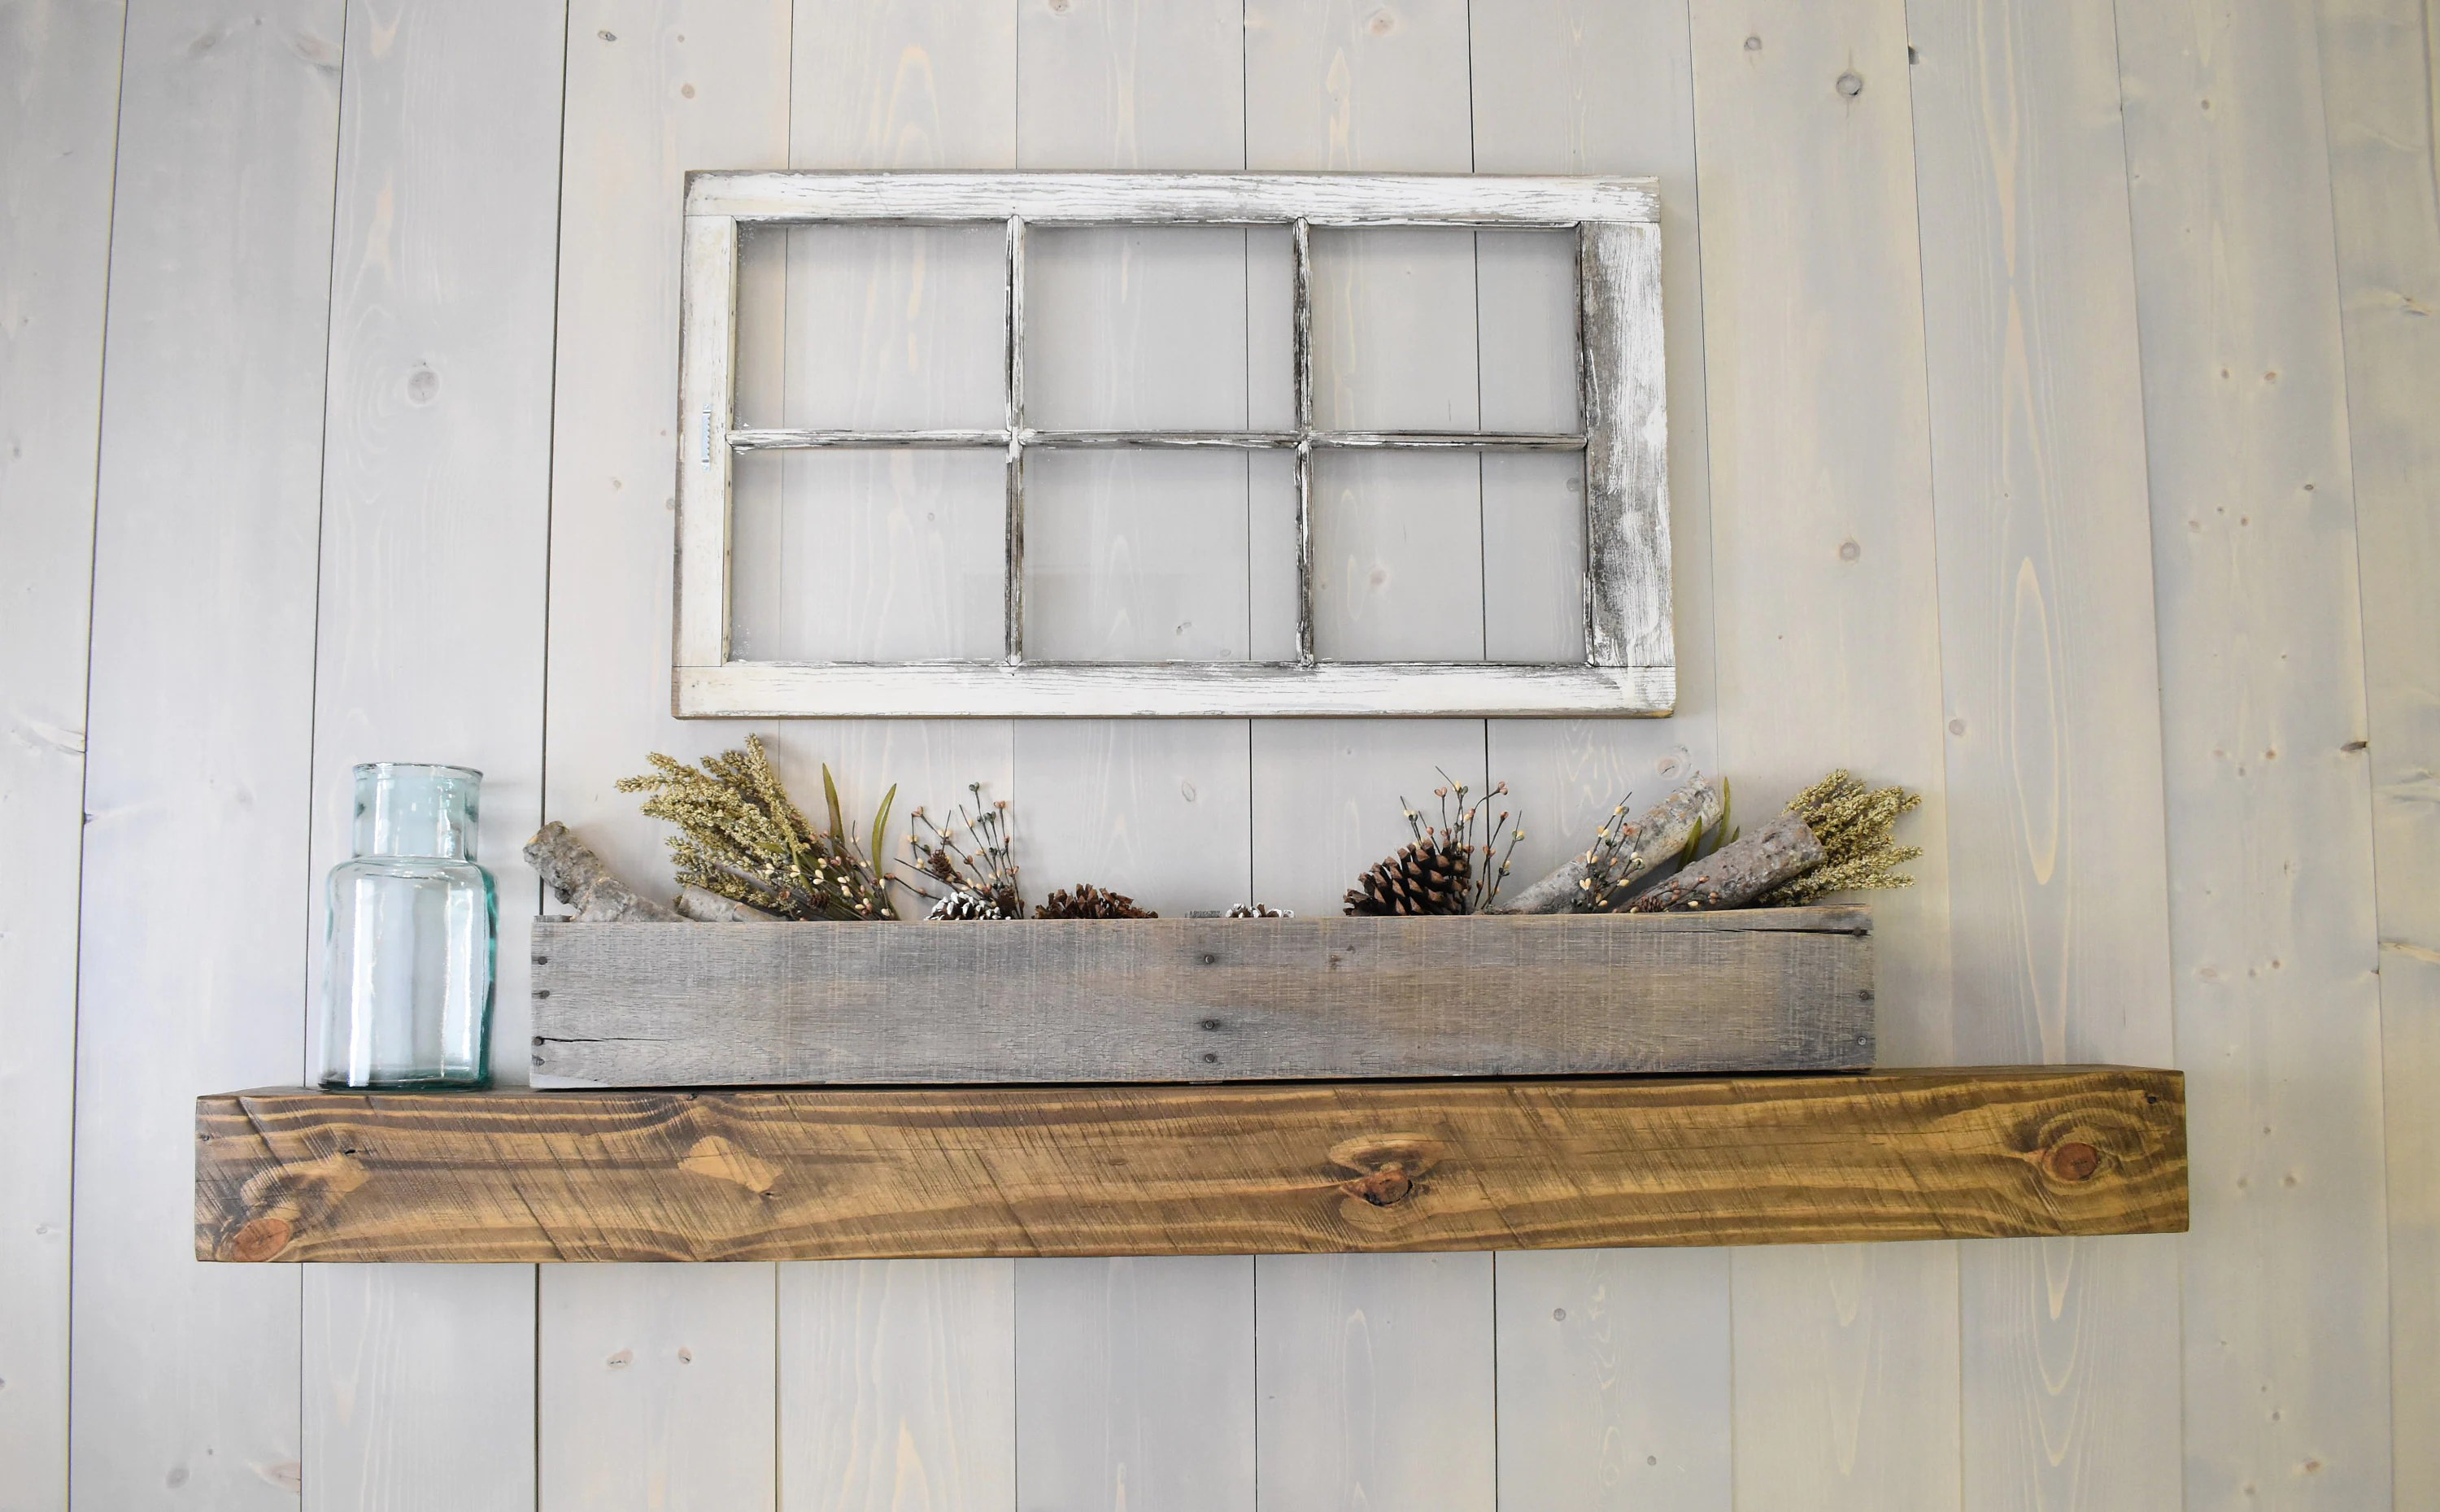 Fireplace Beam Mantel Beam Mantel Fireplace Mantel Wood Shelving Floating Shelves Floating Mantel Rustic Shelf Ledge Shelf Farmhouse Decor